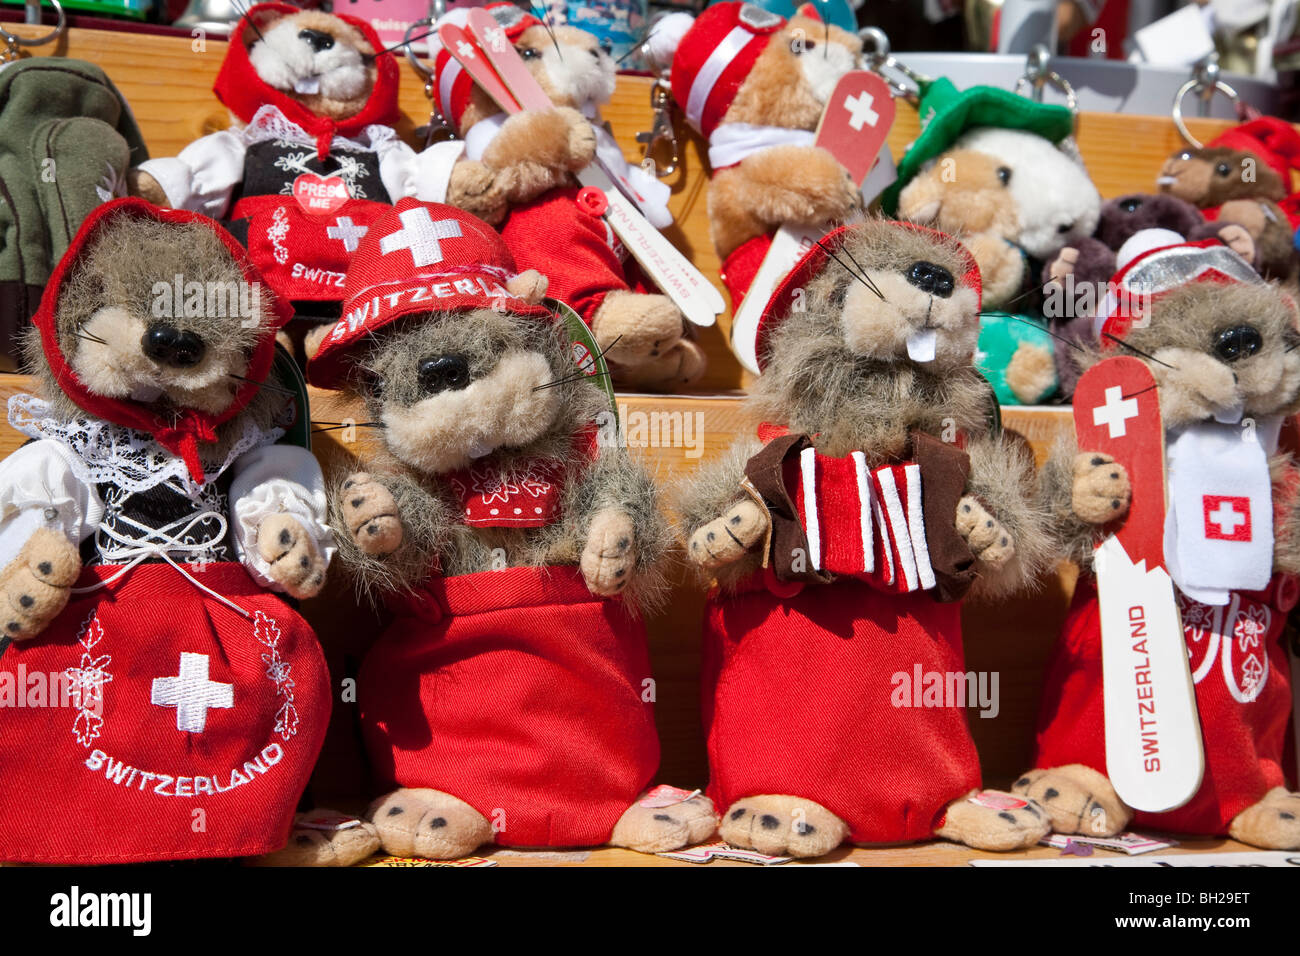 MARMOTS, STUFFED ANIMALS, COSTUMED AS SWISS, DAVOS, GRISONS, SWITZERLAND - Stock Image